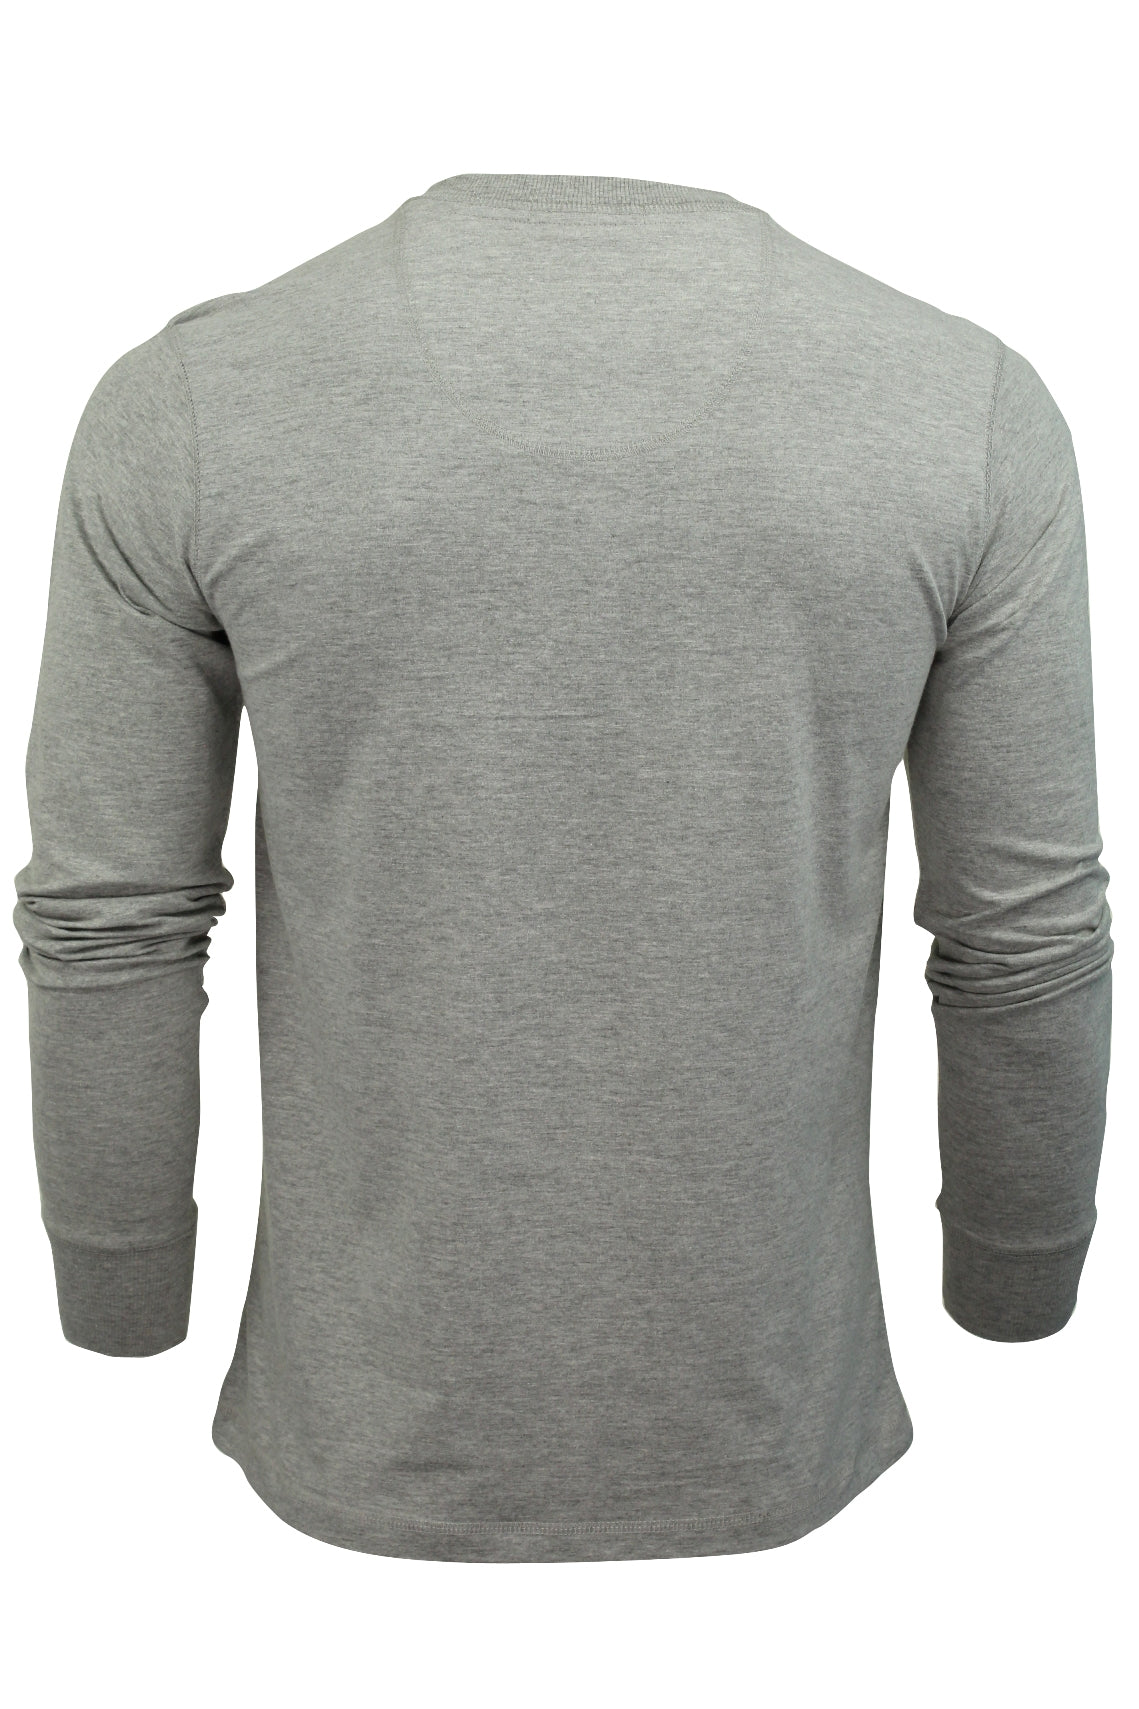 Mens Long Sleeved T-Shirt by Tokyo Laundry Grandad Neck-3